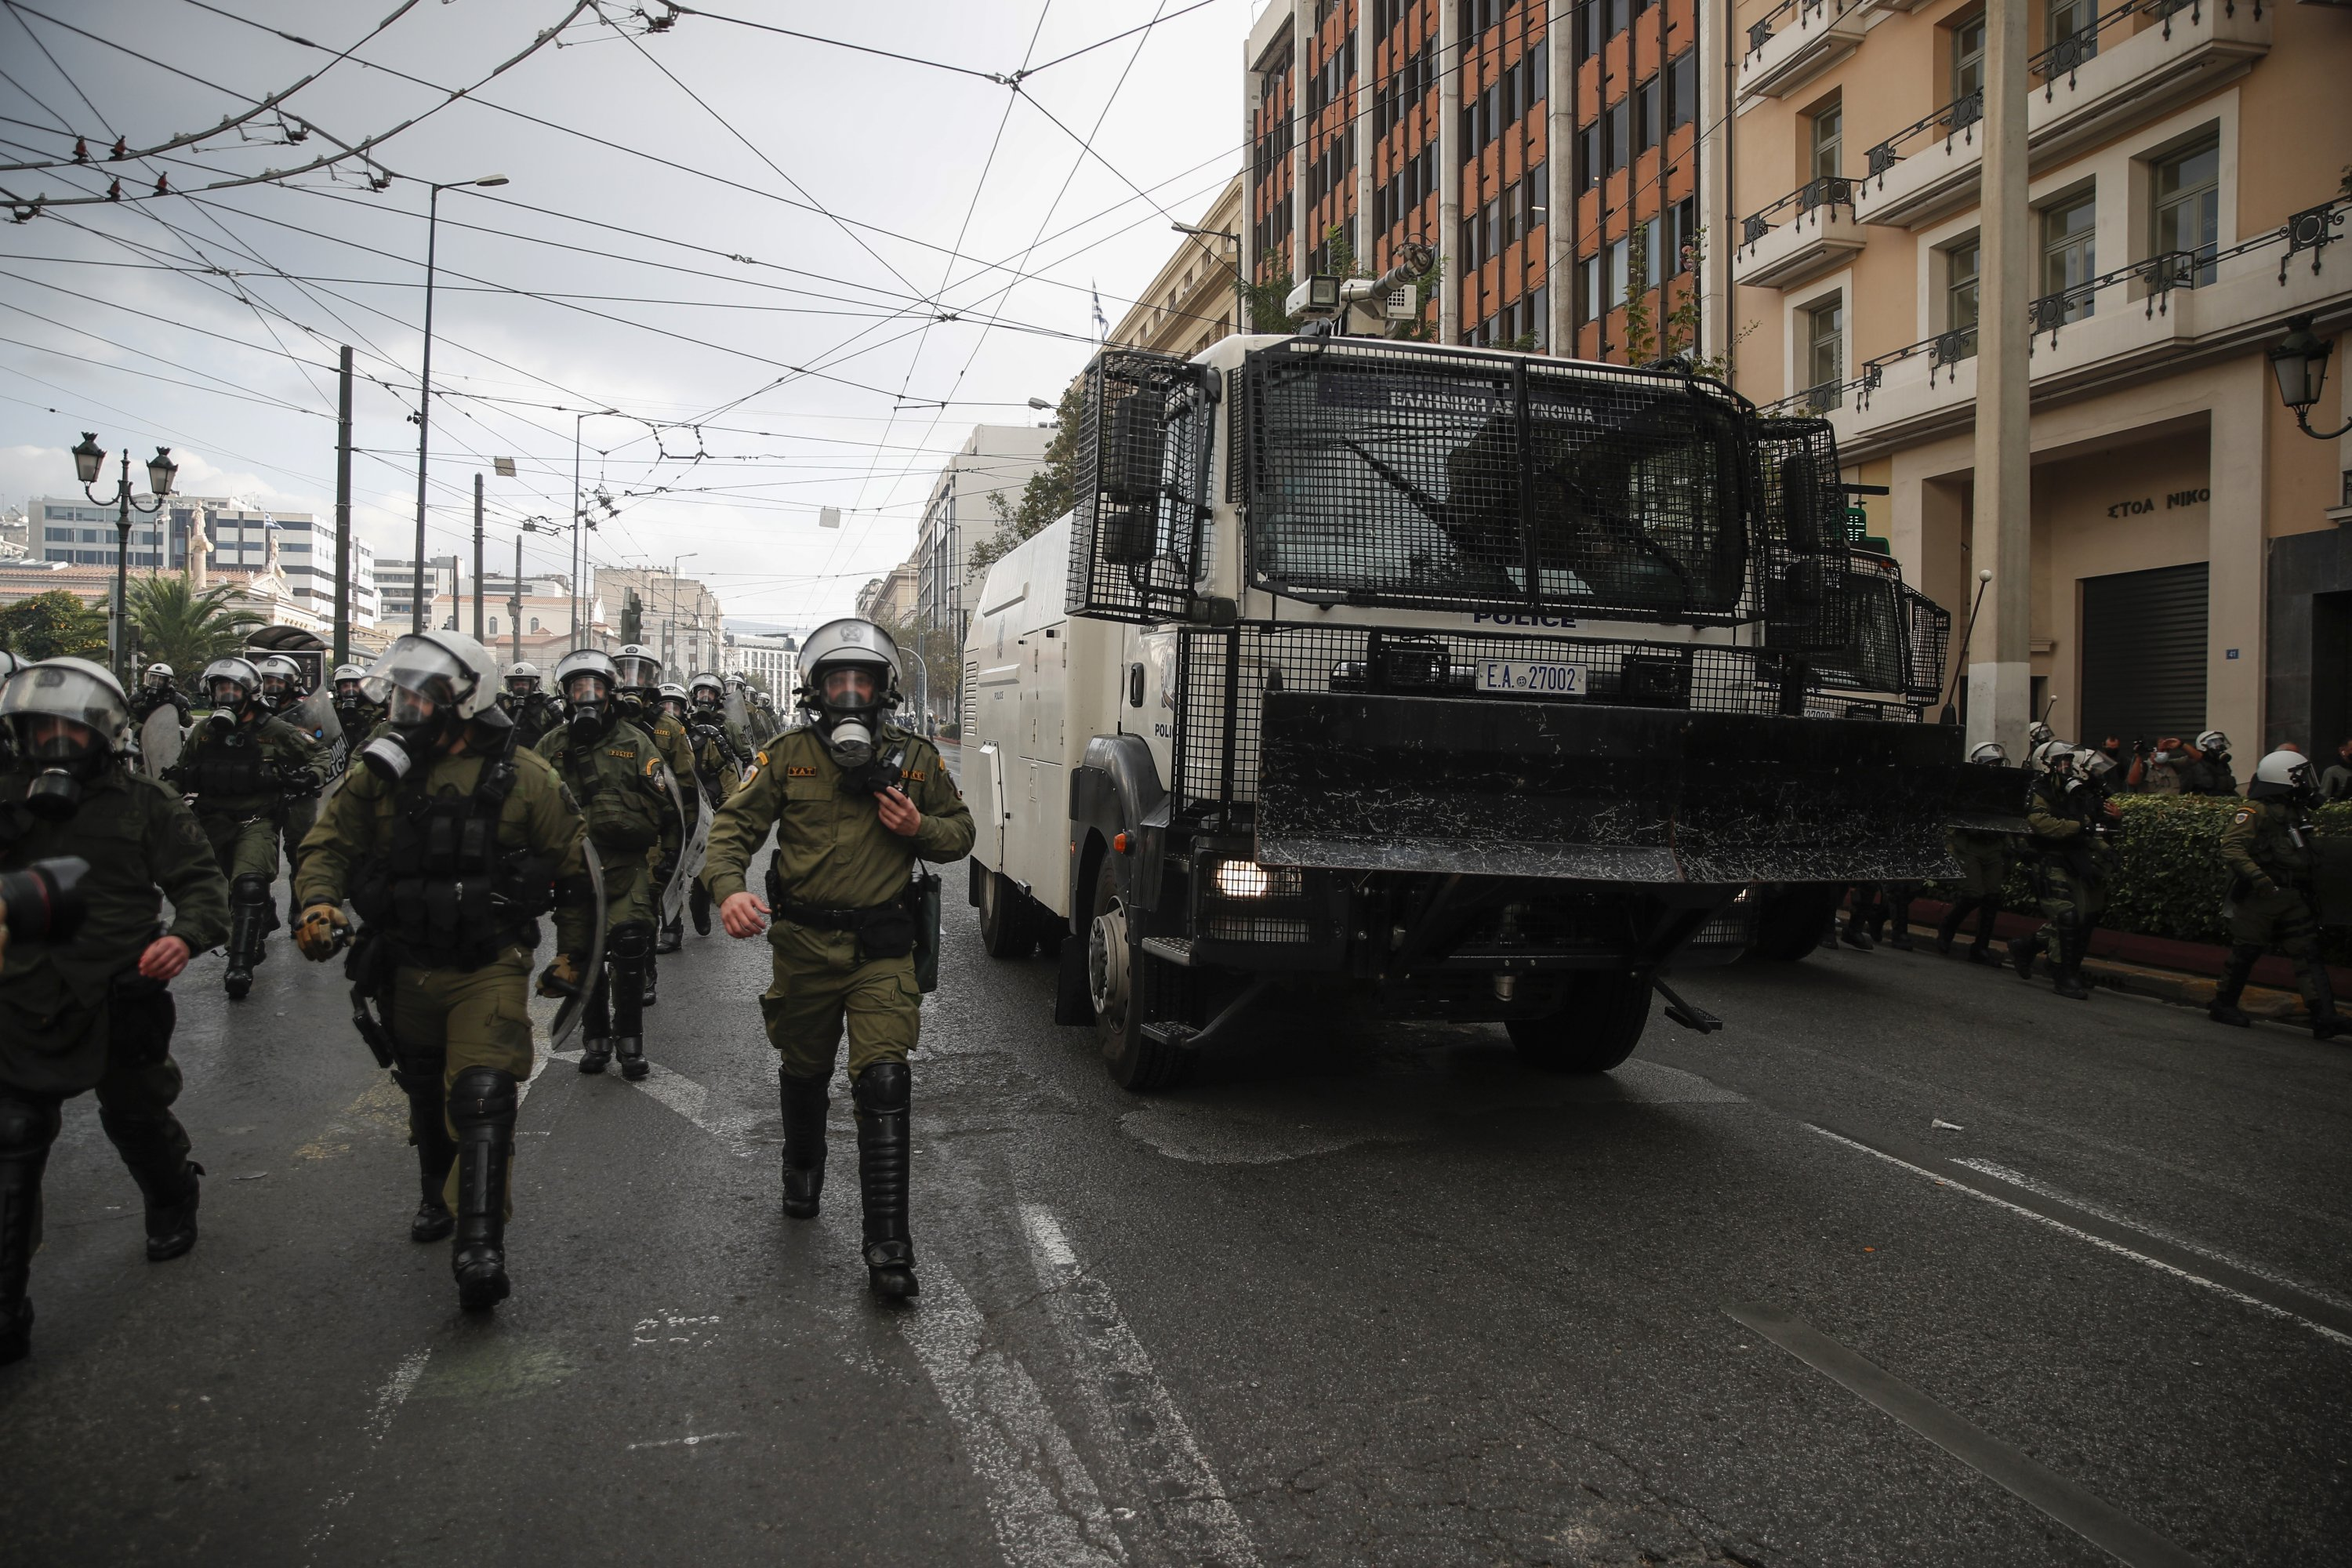 Riot Police officers walk next to a water cannon vehicle, in central Athens, Nov. 17, 2020. Thousands of police officers have been deployed in Athens and the northern Greek city of Thessaloniki to prevent gatherings usually held to mark the anniversary of the 1973 crushing of a student uprising against the military junta then ruling Greece. The government has banned the marches this year, citing public health concerns as the country struggles to contain a resurgence of the coronavirus. (AP Photo/Thanassis Stavrakis)